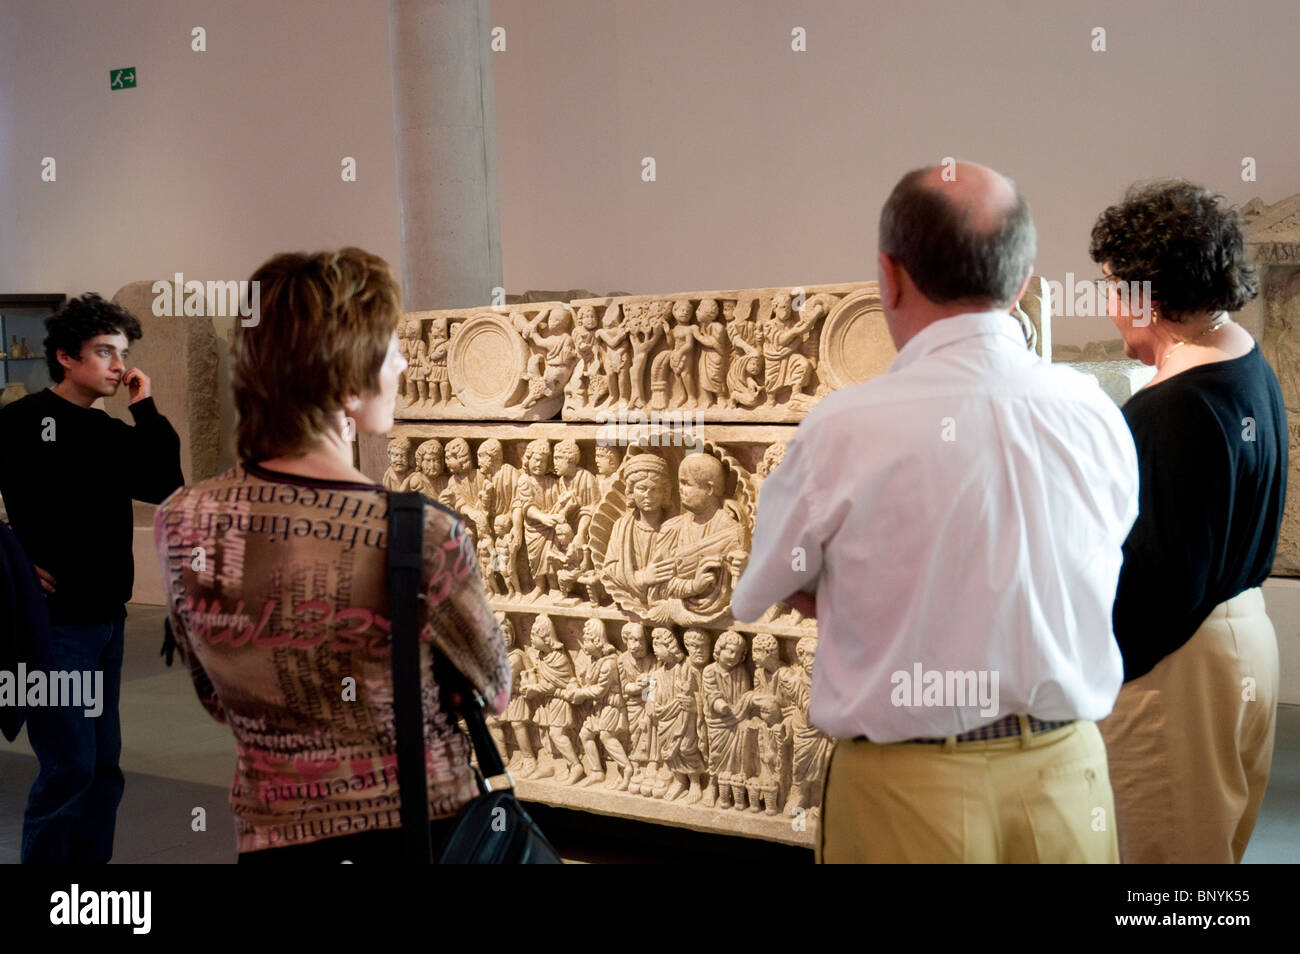 Group Tourists Visiting Arles Archaeological Museum, Tour Guide Explaining Objects on Display, Funeral Casket - Stock Image